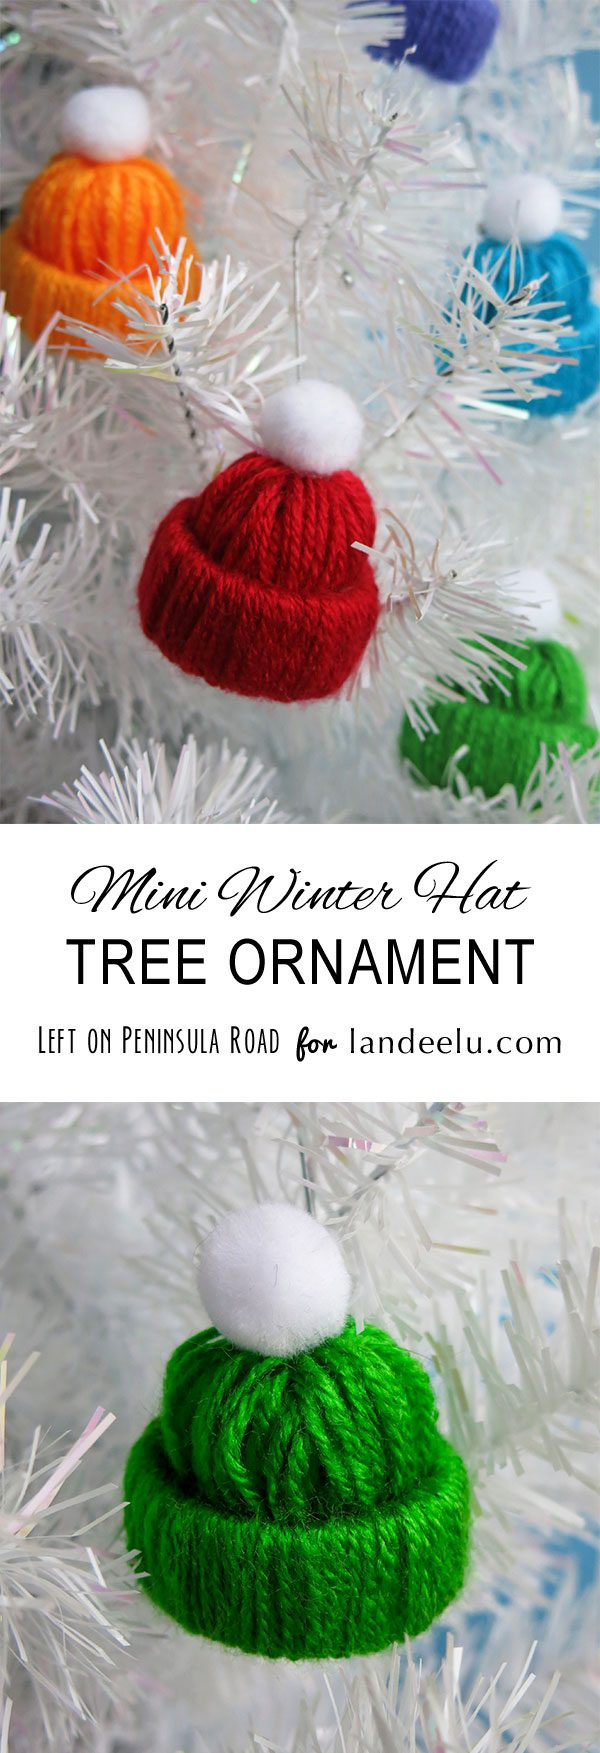 Mini Winter Yarn Hat Christmas Tree Ornaments Tutorial | Landeelu - such an easy and fun kids craft activity for Christmas time!